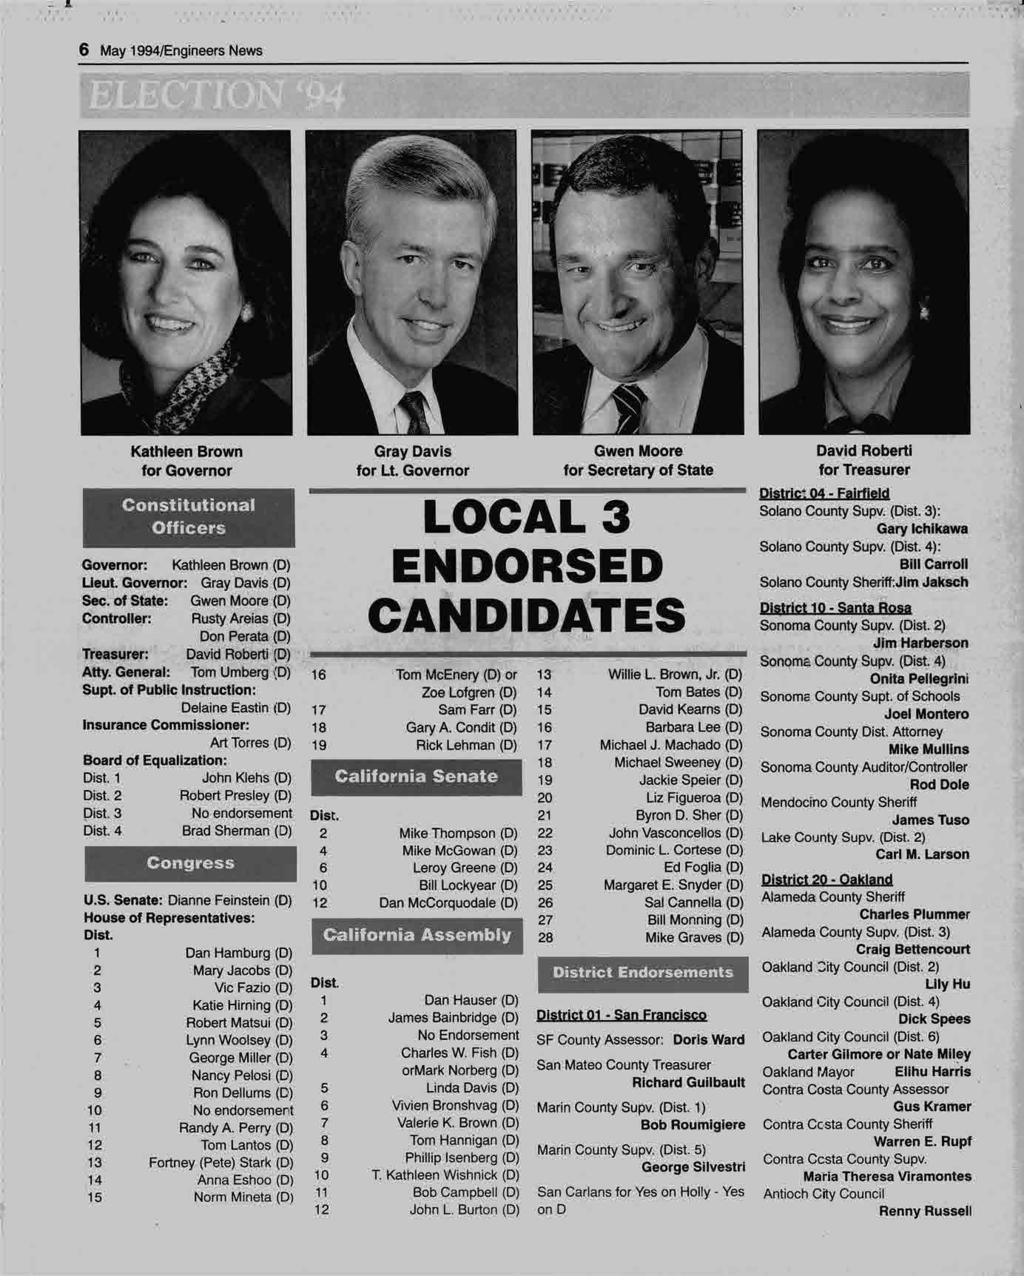 1 6 May 1994/Engineers News, 11 -IT 4 1 1 Kathleen Brown Gray Davis Gwen Moore David Roberti for Governor for Lt.